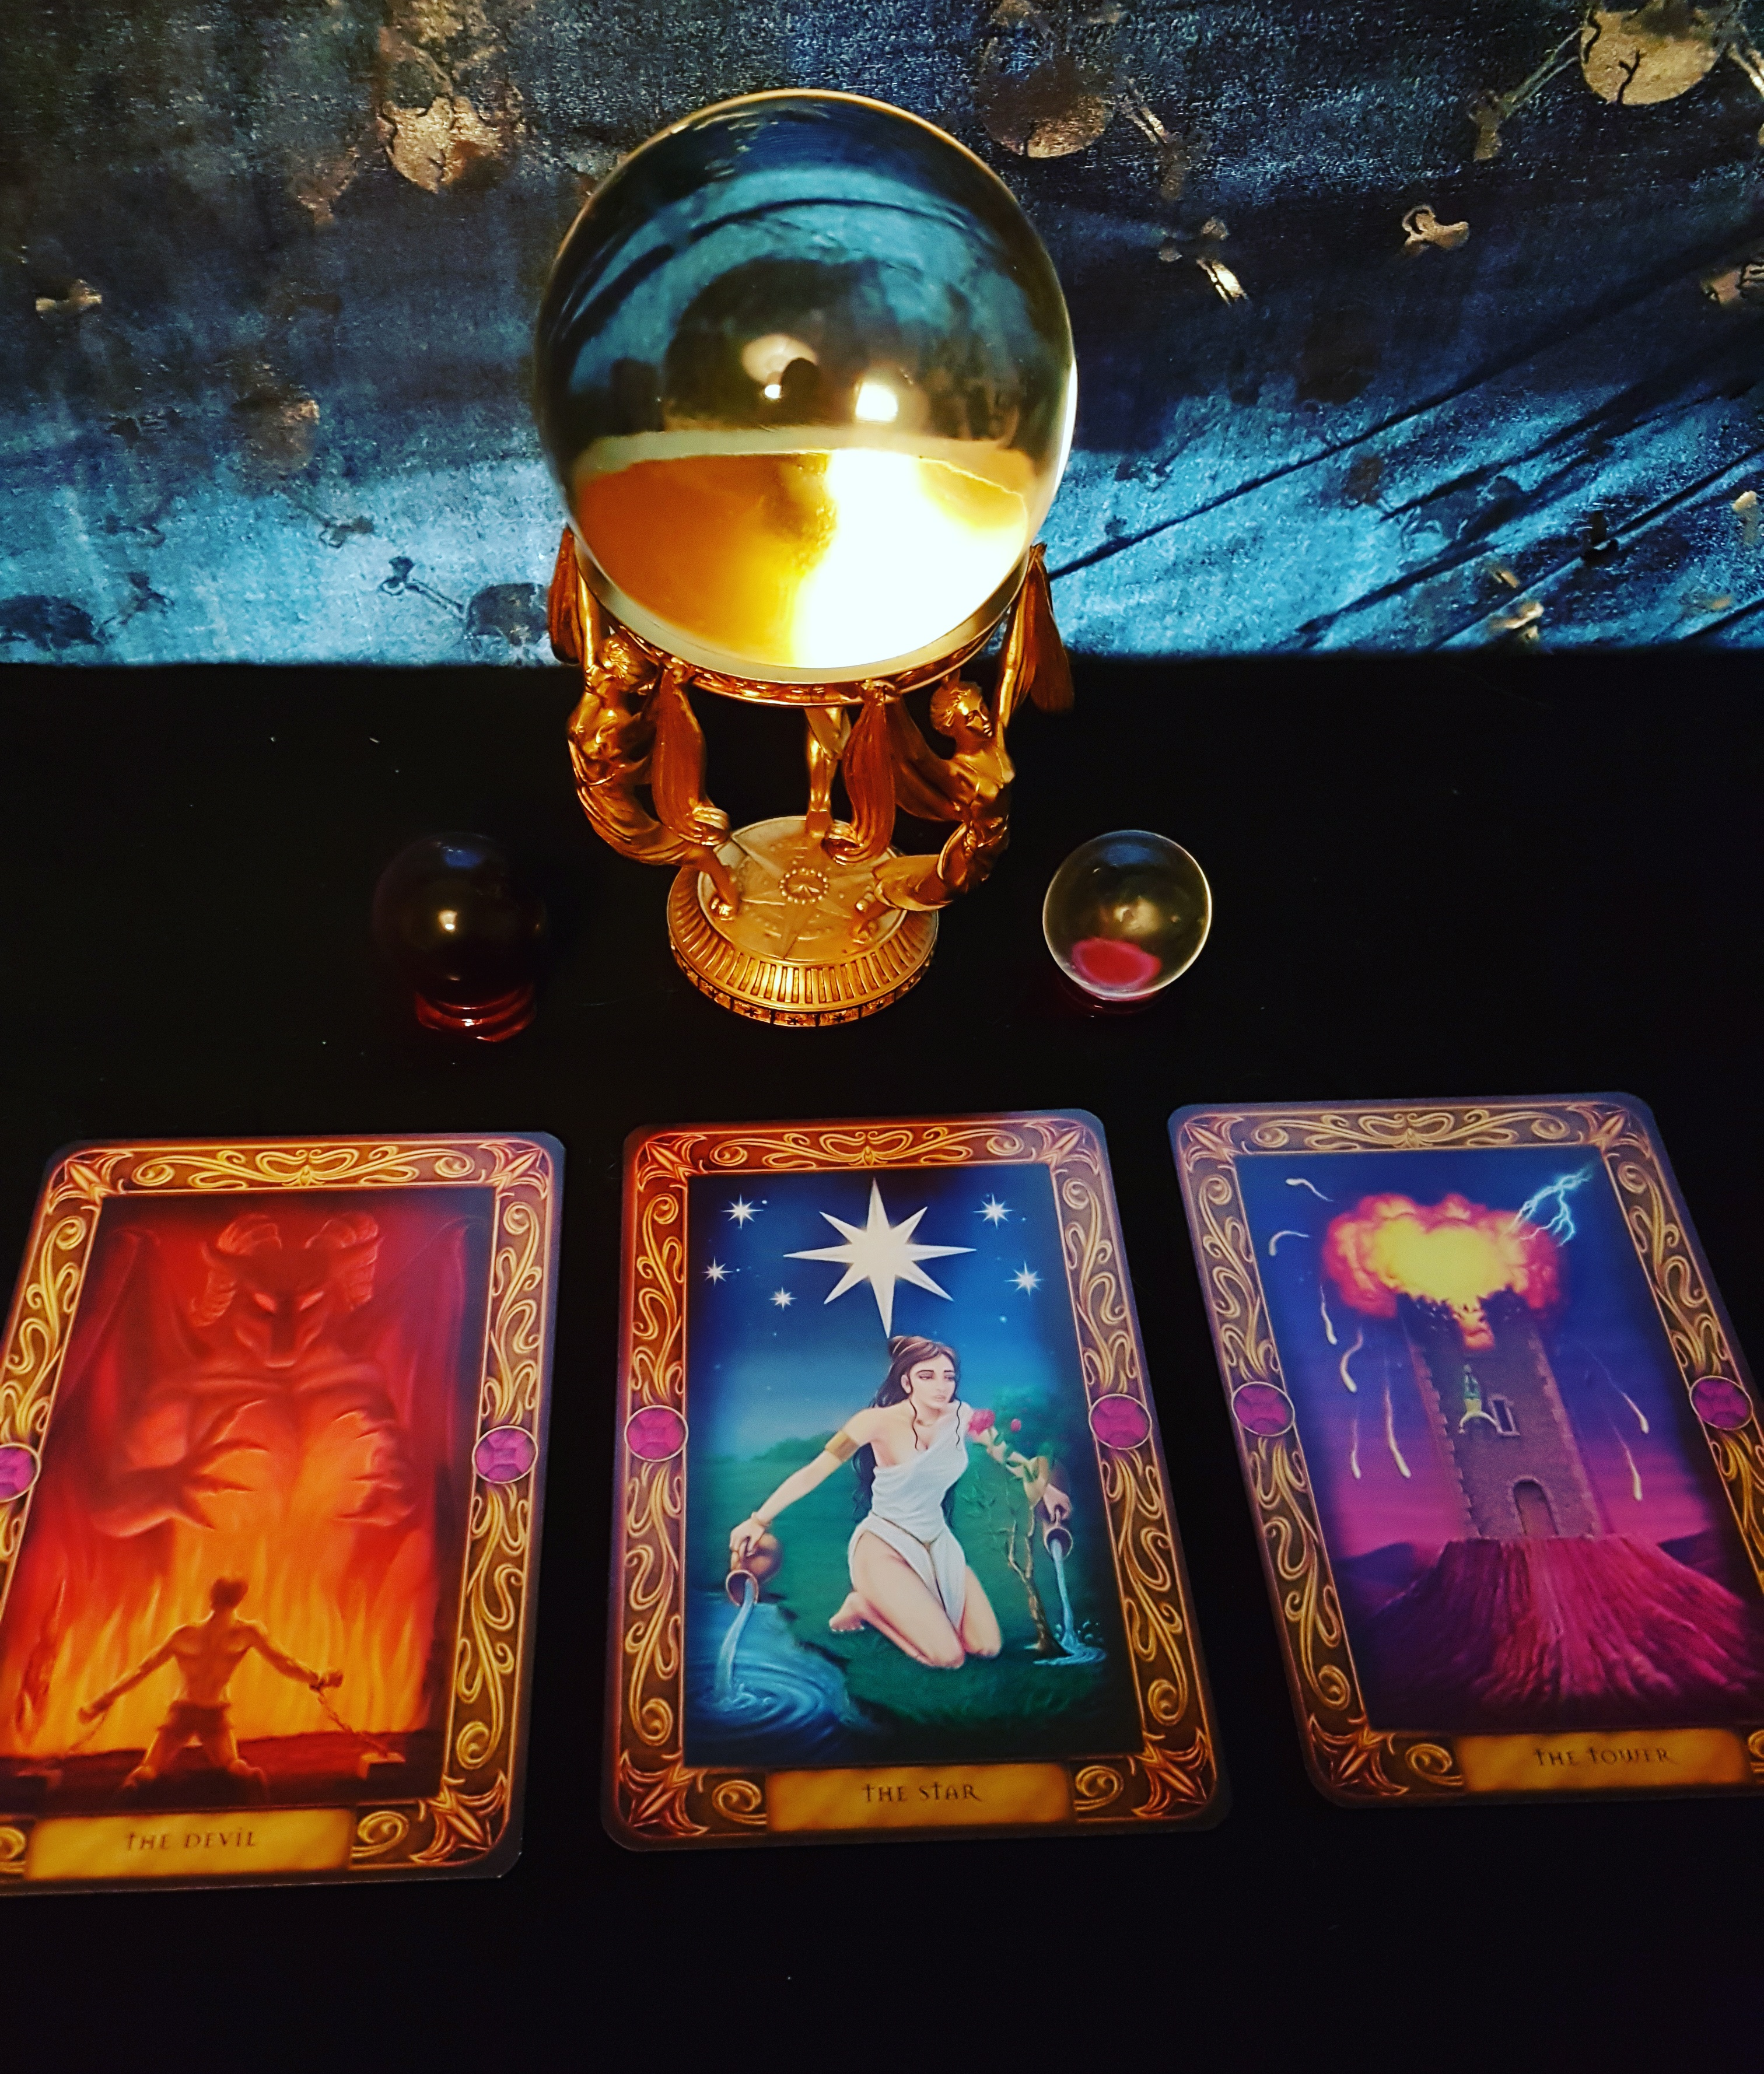 Perform a crystal ball reading